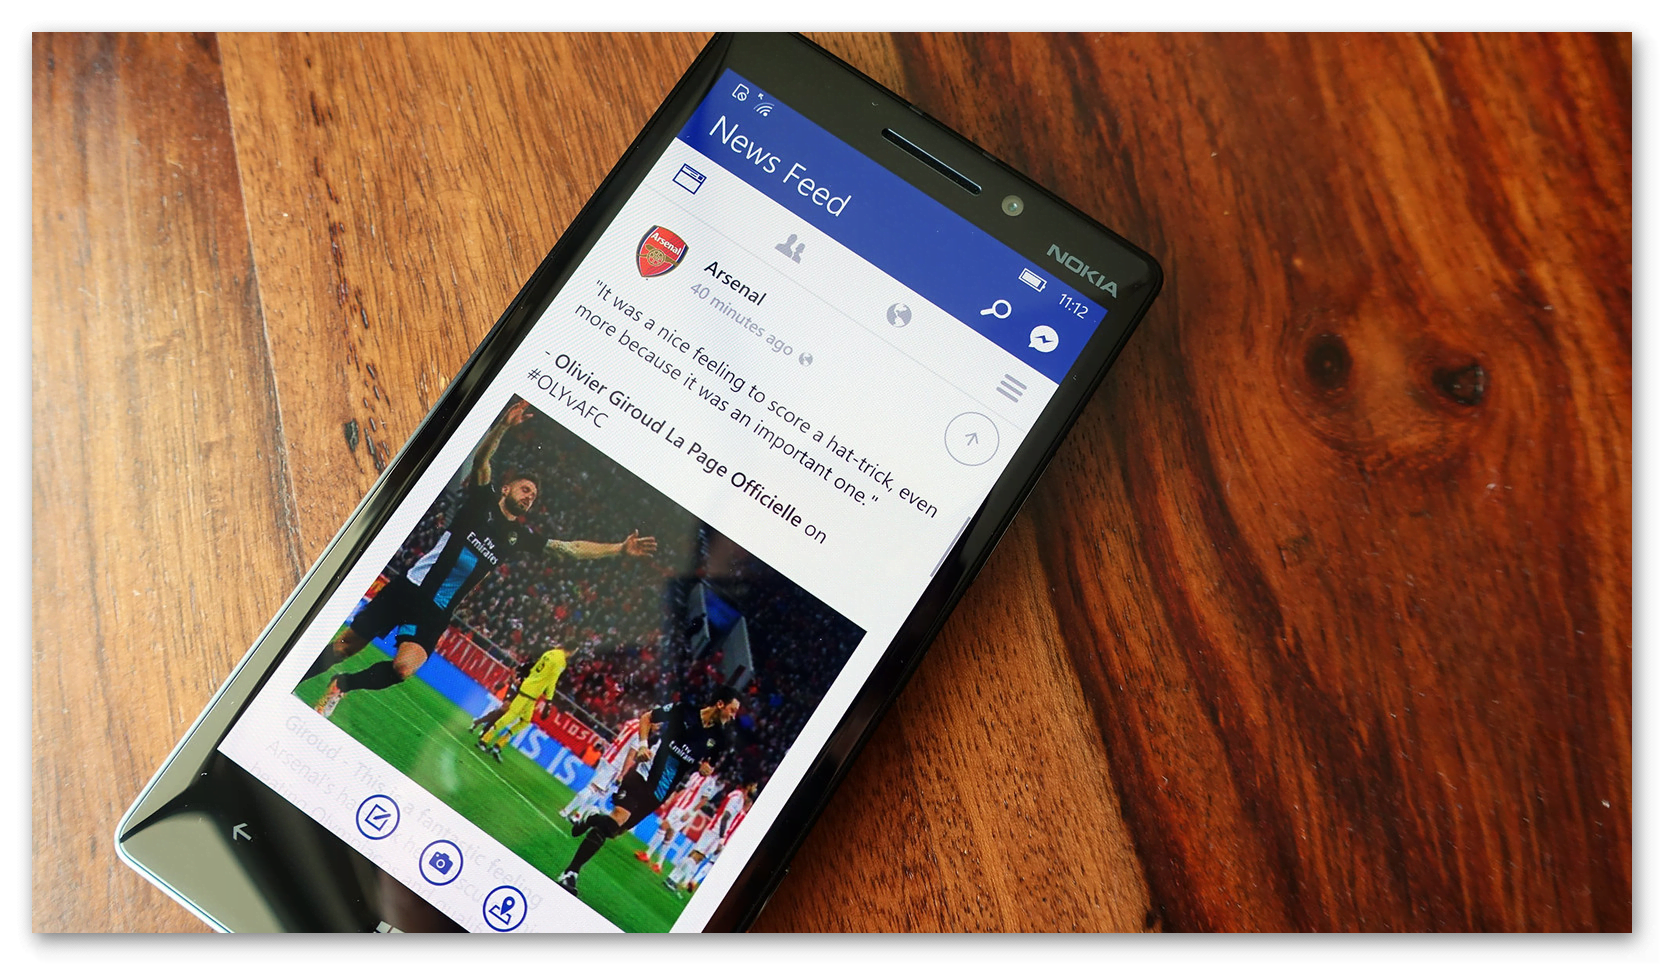 Картинка Facebook на Windows Phone